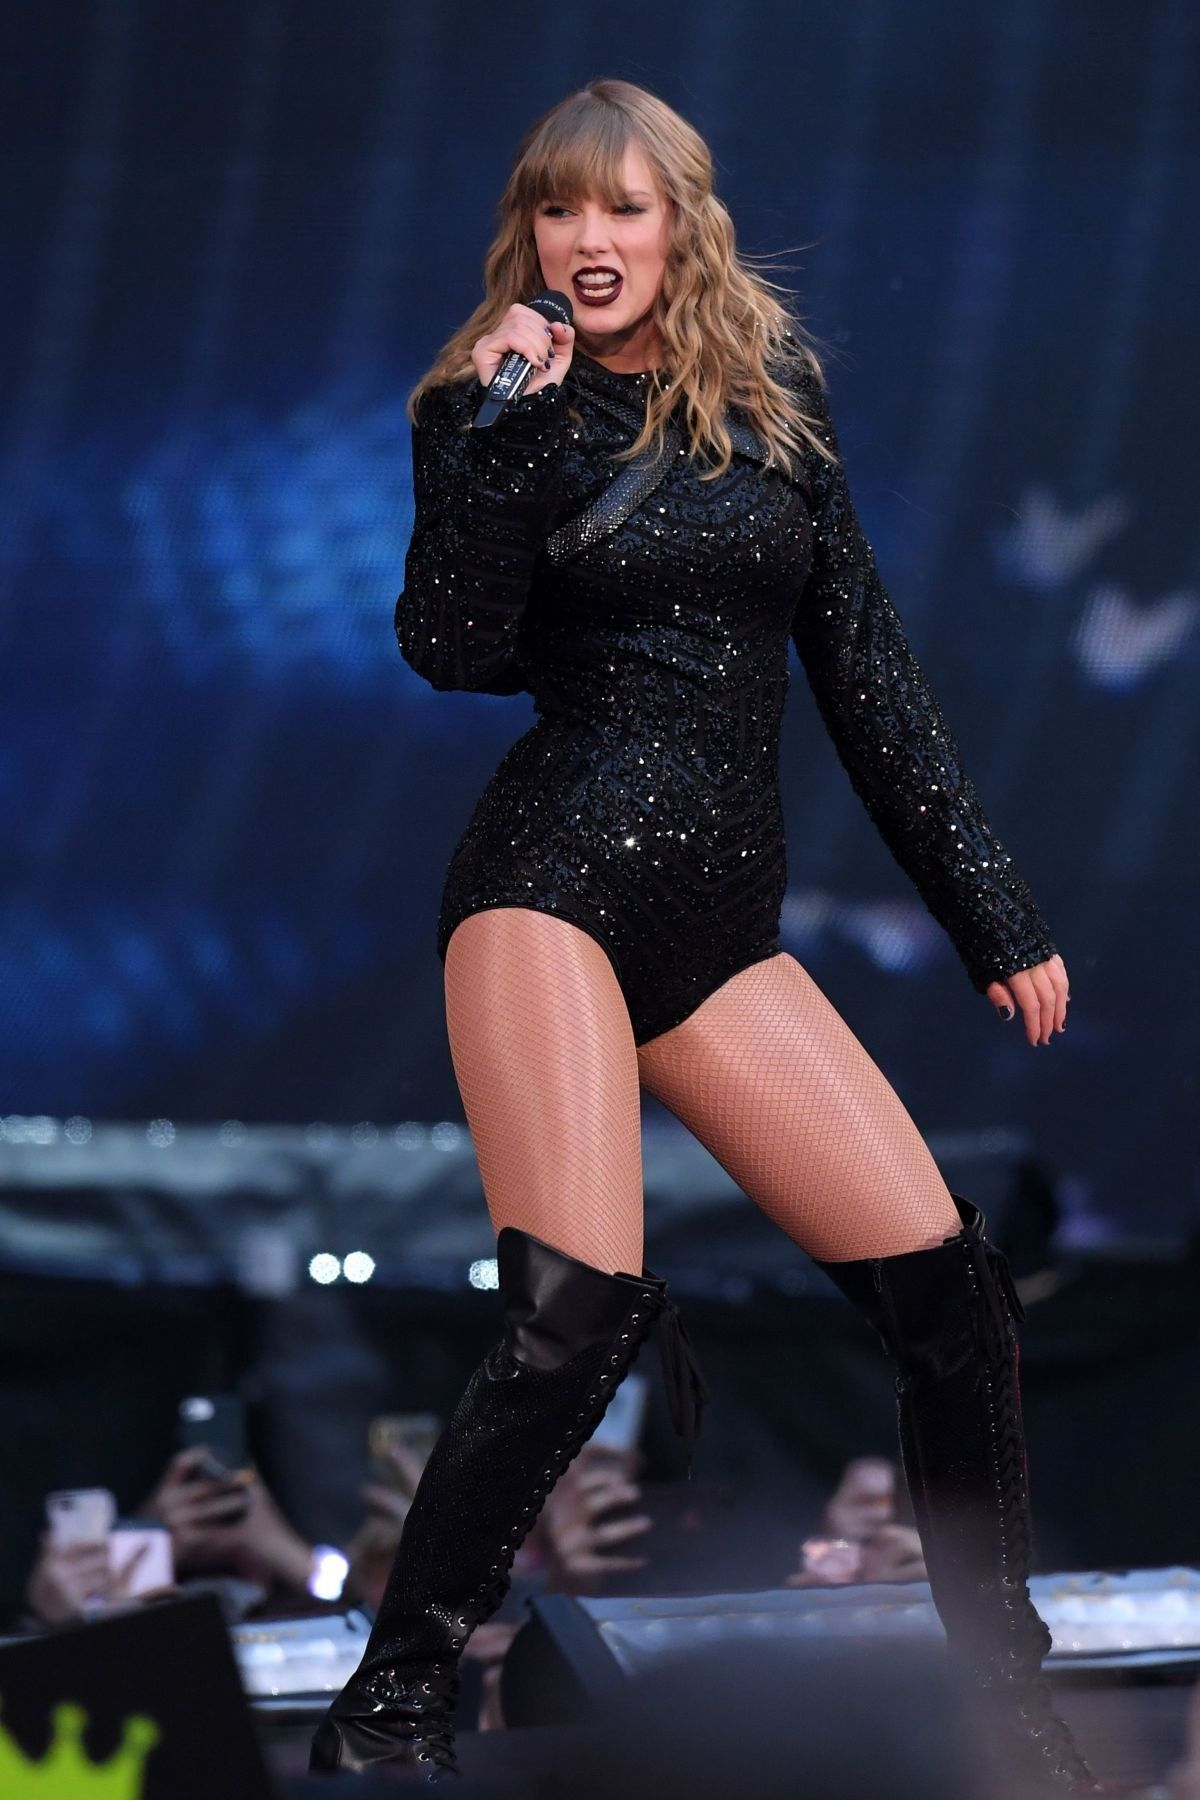 Taylor Swift Sexy Outfit With Sheer Nude Fishnet Pantyhose -7229